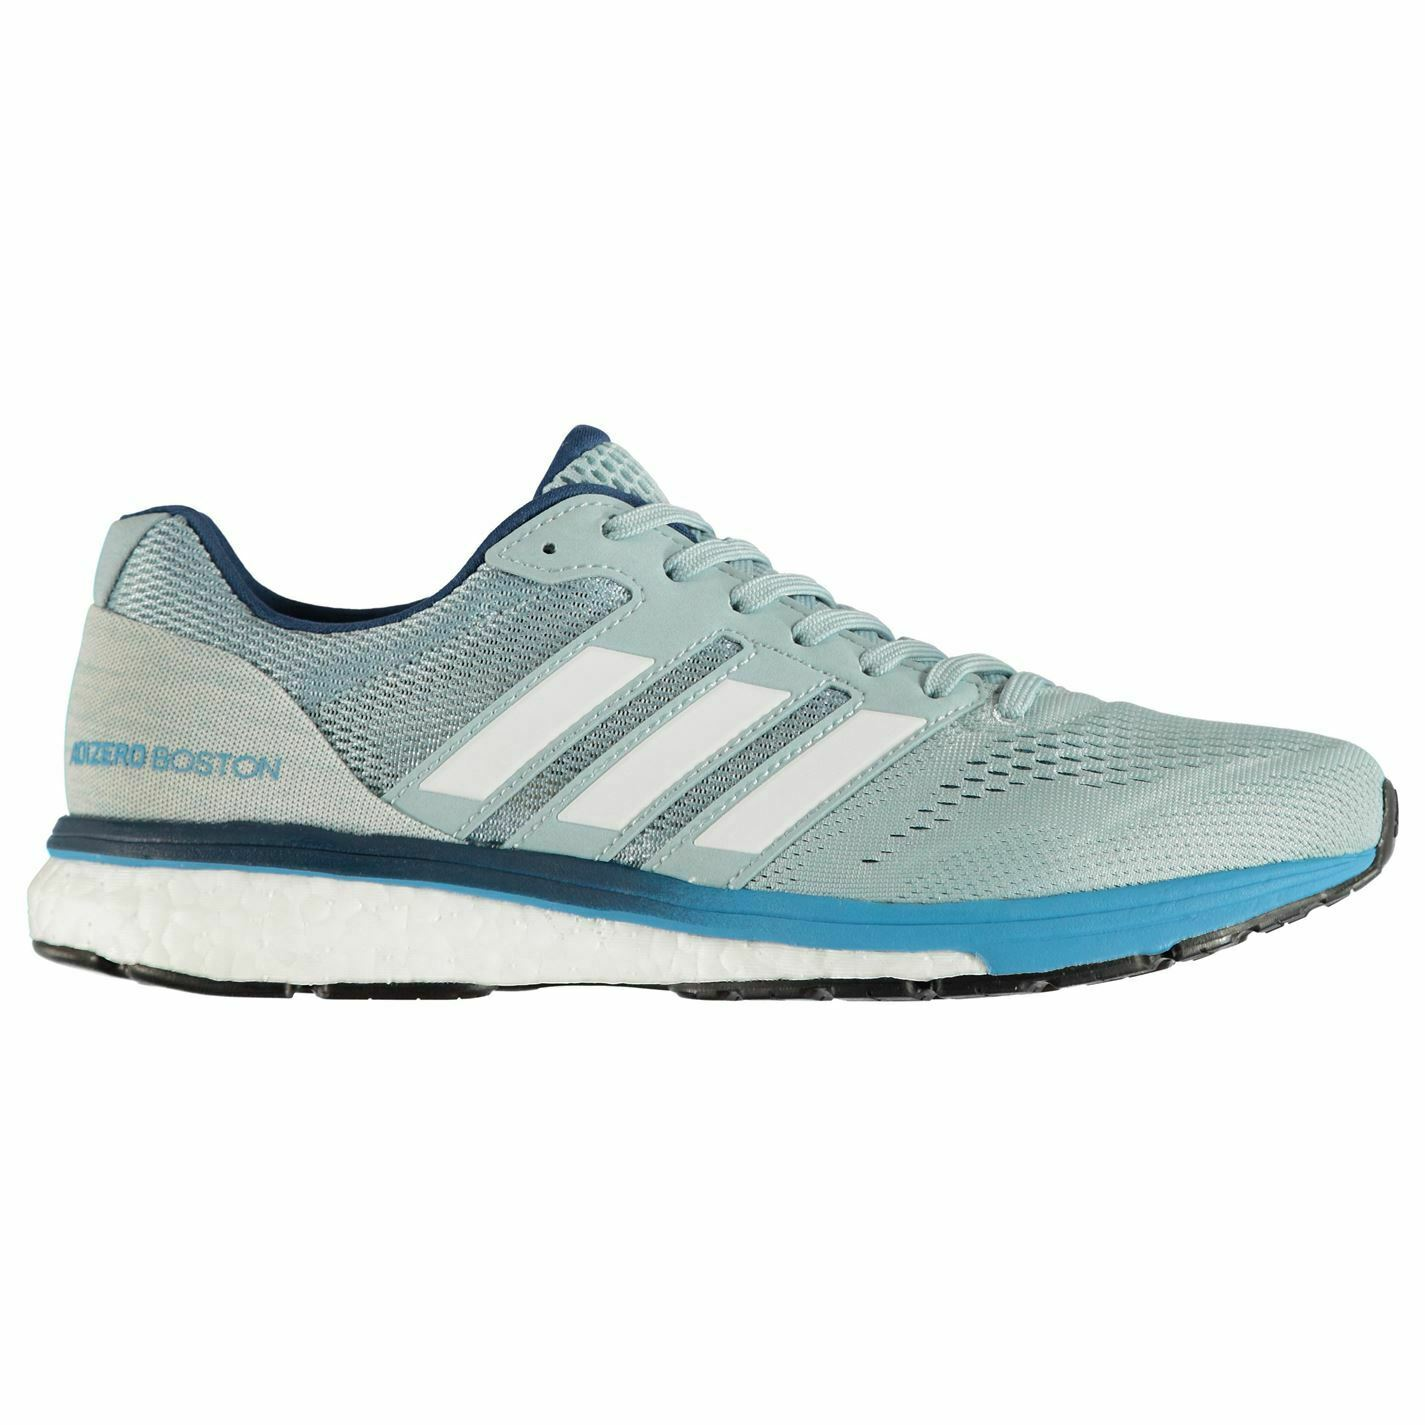 Adidas Mens  adizero Boston 7 Running shoes Road Breathable Lightweight Mesh  in stadium promotions